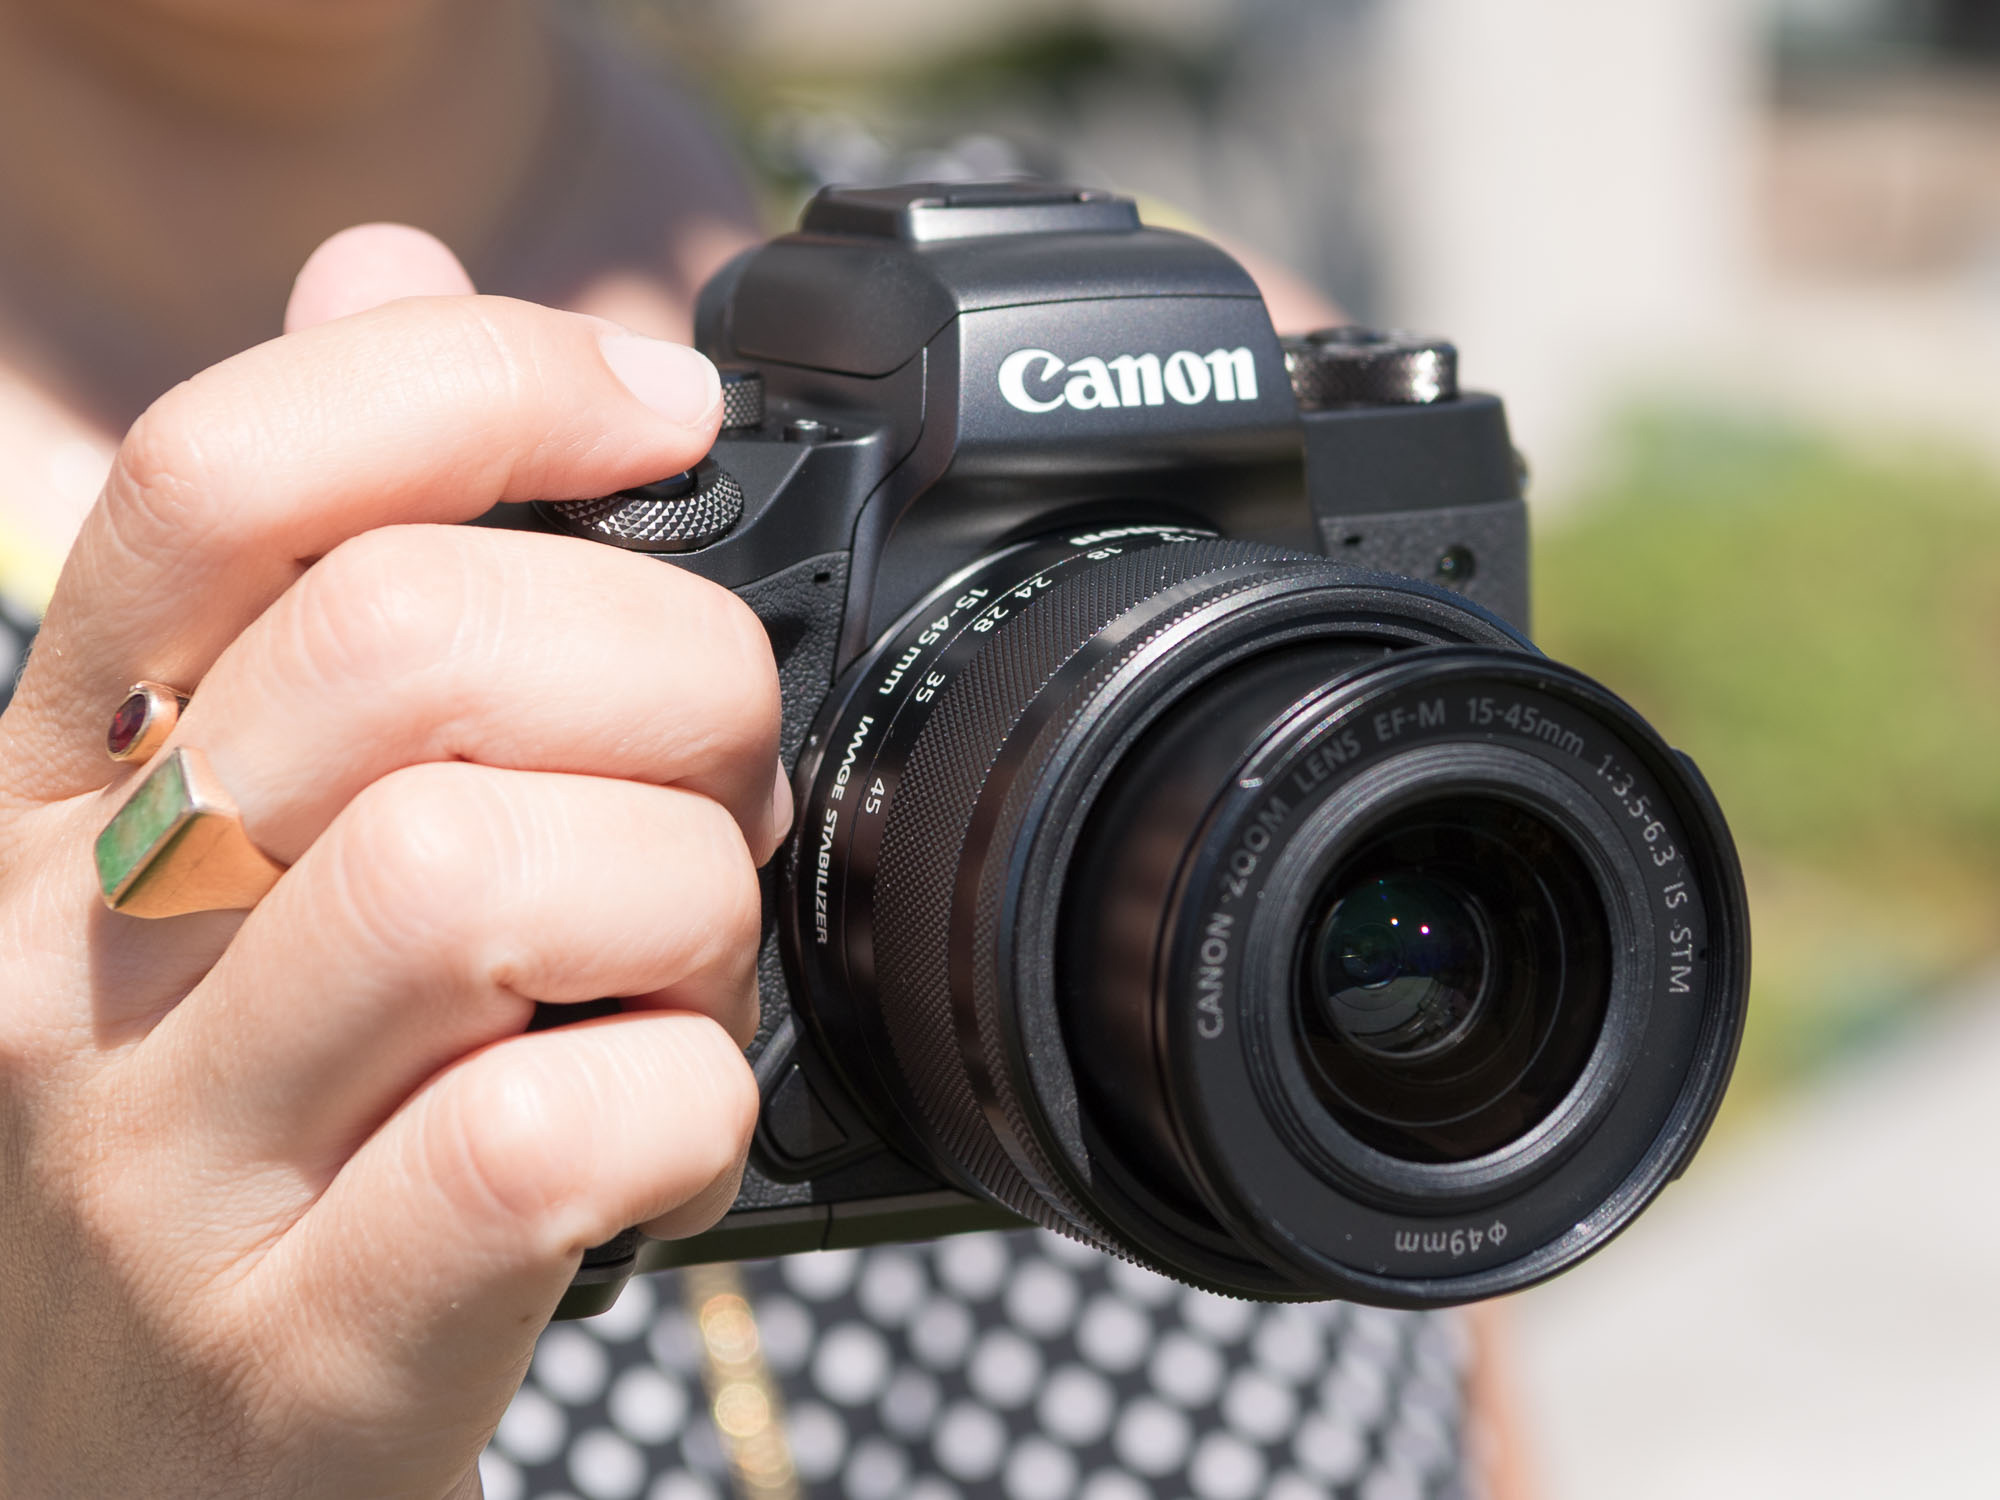 96681b90ef2 Rumor  Canon full-frame mirrorless already  being used by select pro  photographers